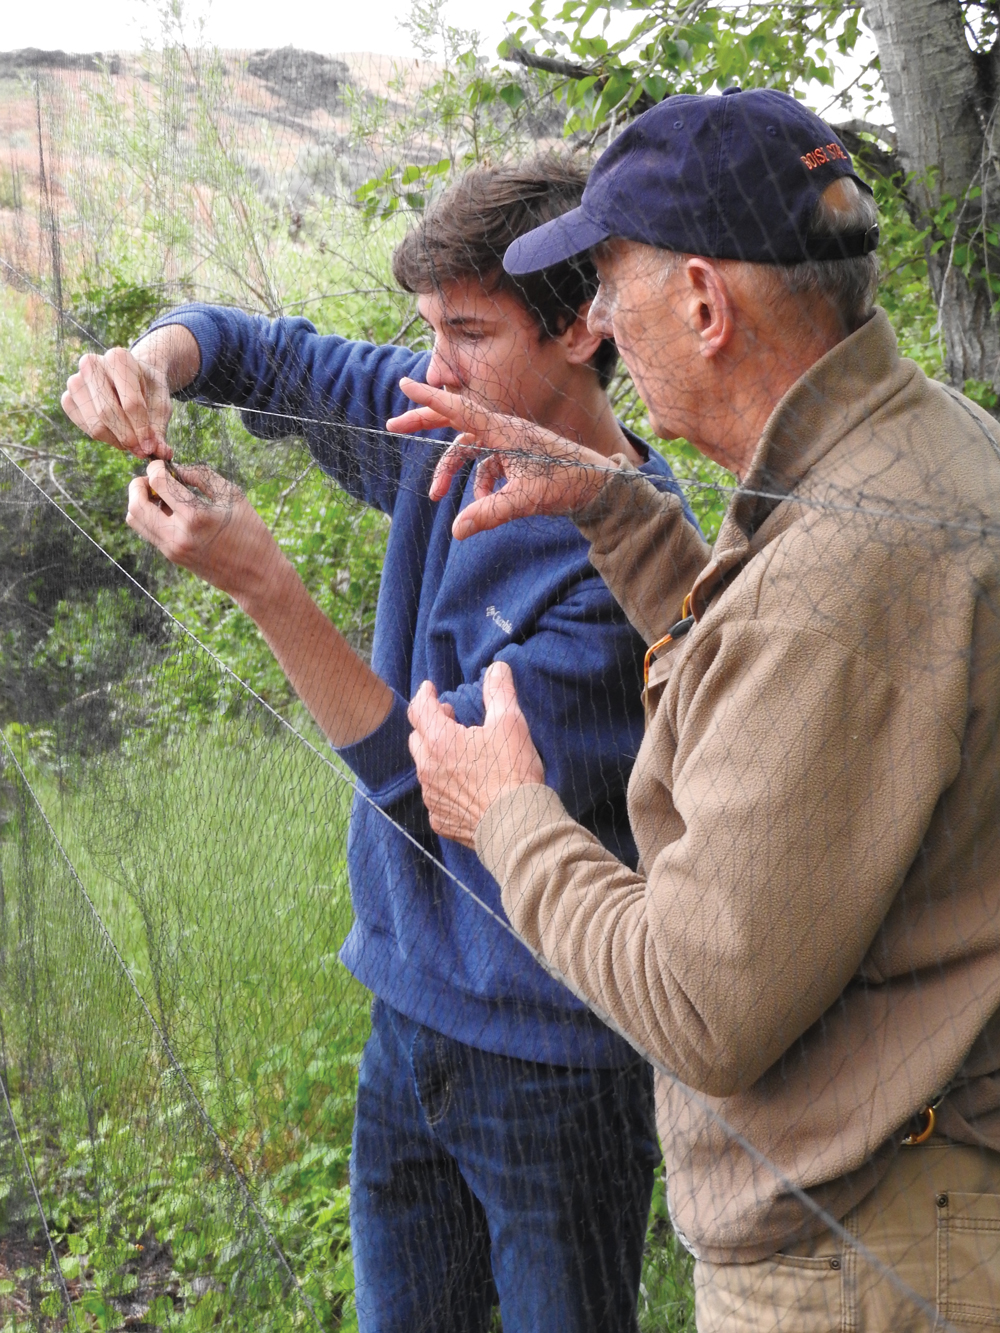 a young student extracts a songbird from a net while an older volunteer teaches over his shoulder